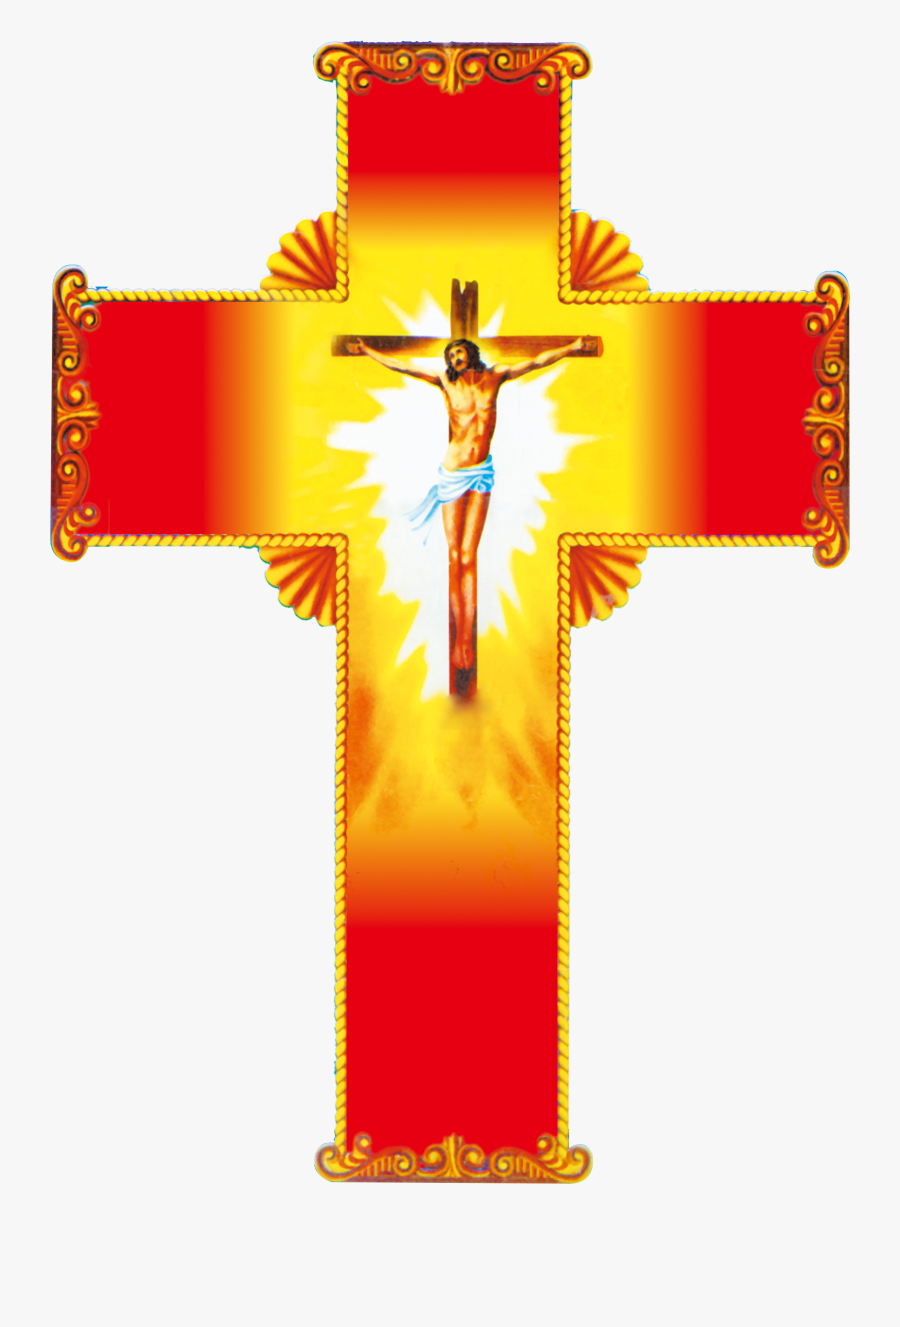 Christian Red Jesus Material - Jesus Cross Hd Images Png, Transparent Clipart